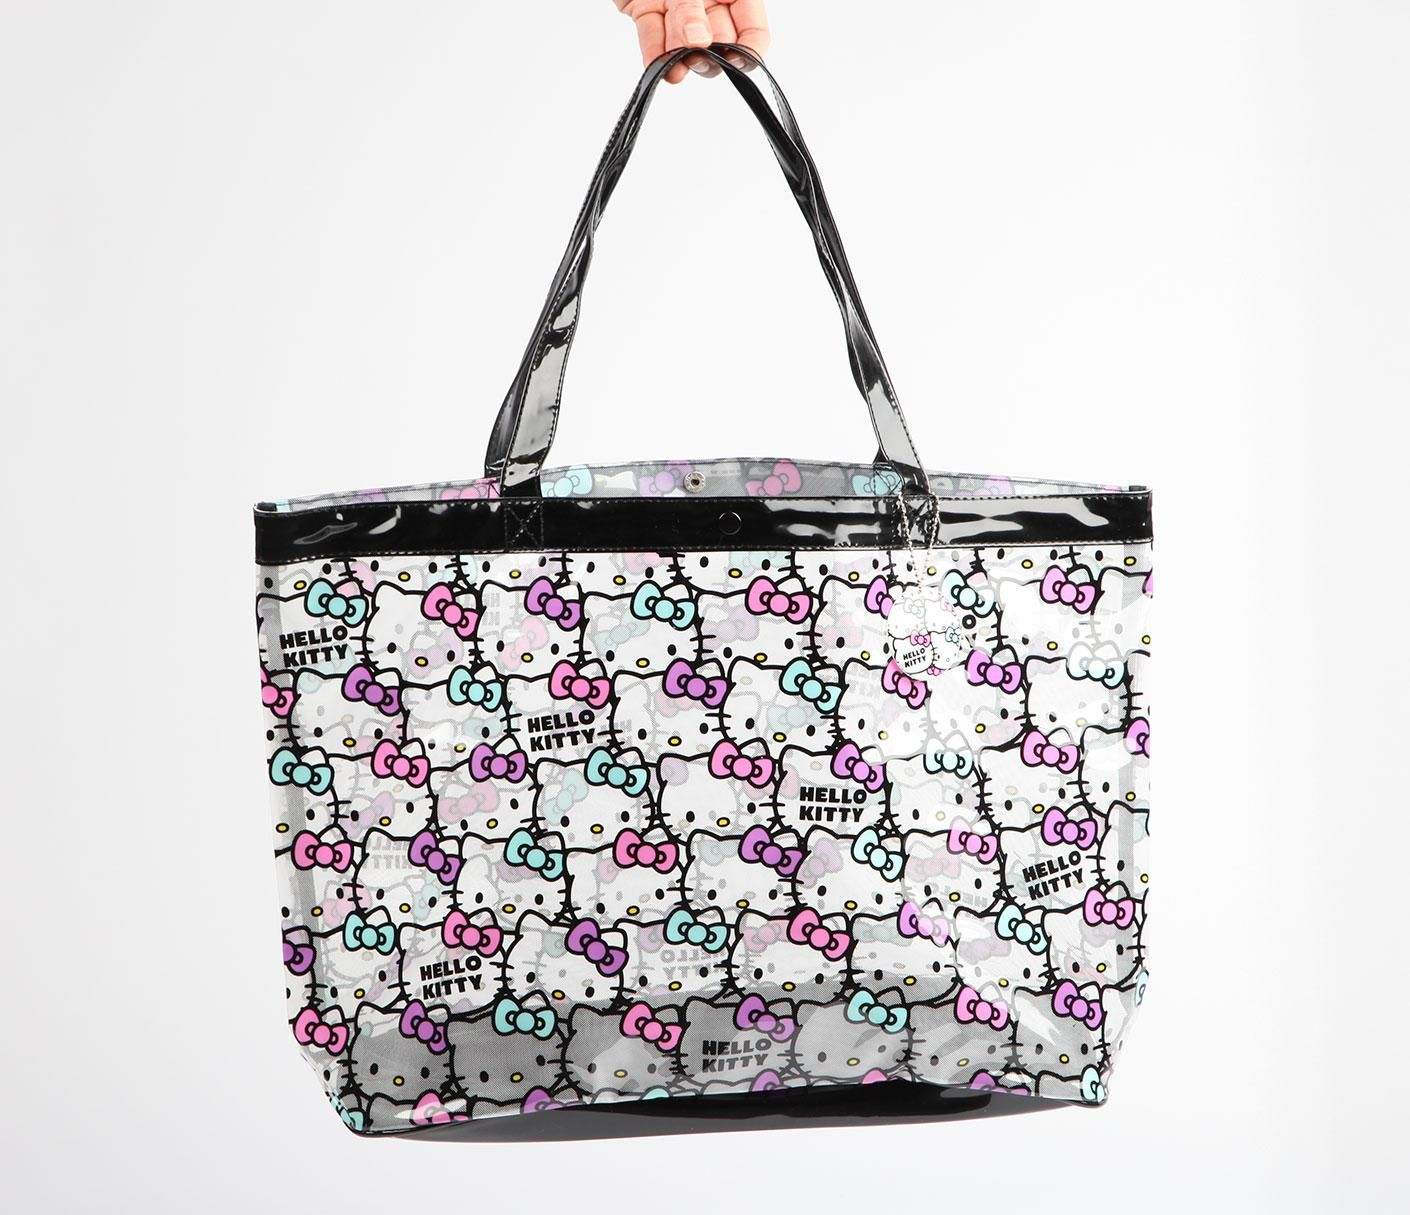 8c3c8485c582 Hello Kitty Clear Vinyl Tote Bag  Face  38.00